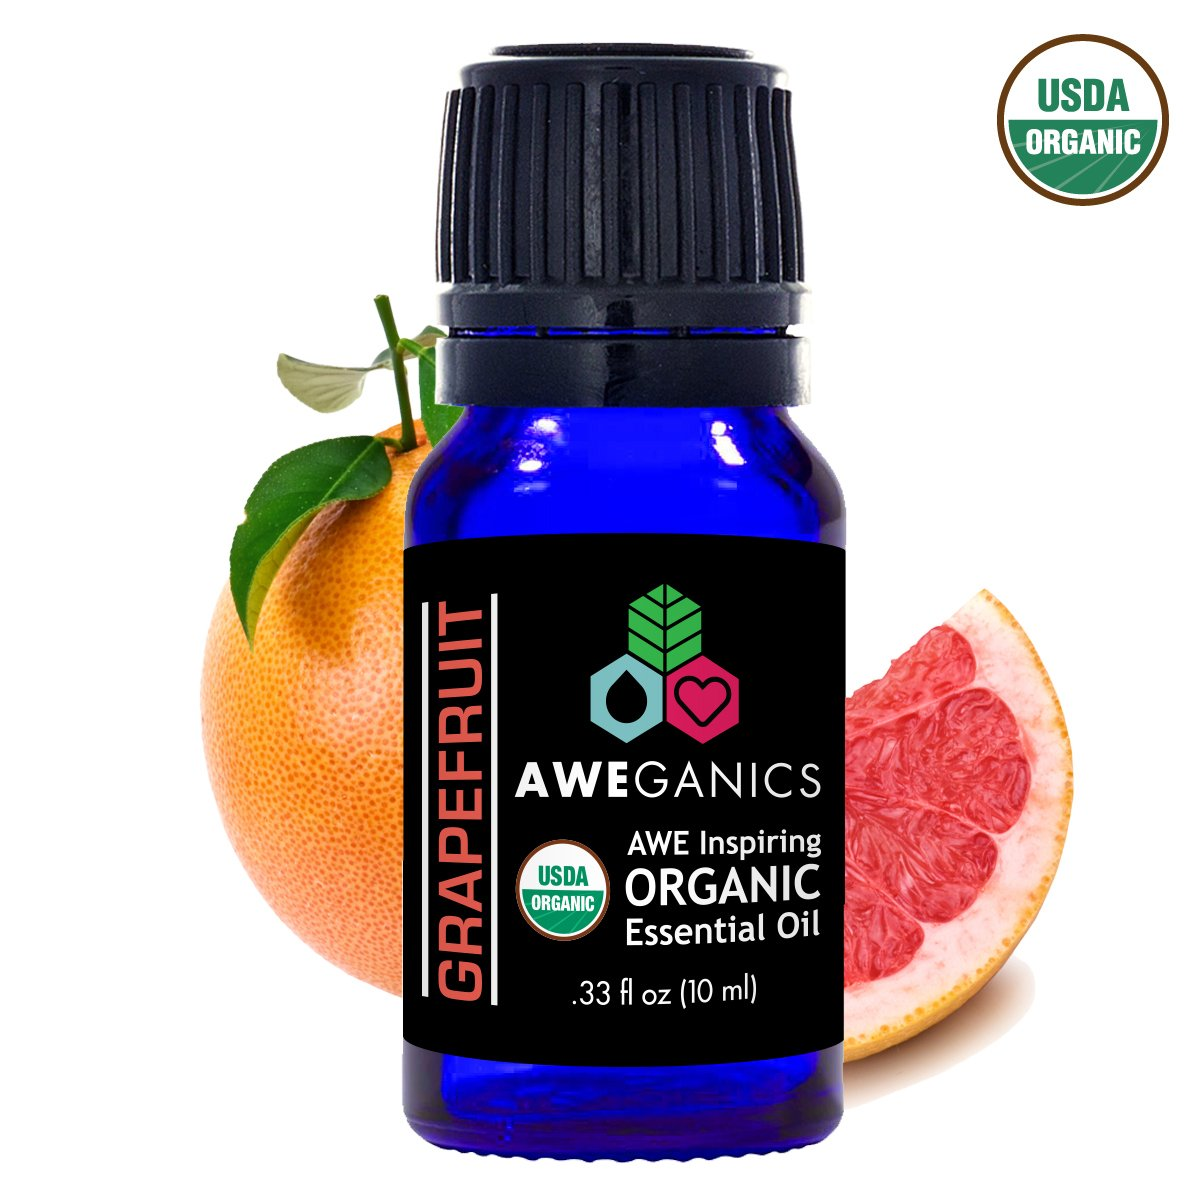 Aweganics Pure Grapefruit Oil USDA Organic Essential Oils, 100% Pure Natural Premium Therapeutic Grade, Best Aromatherapy Scented-Oils for Diffuser, Home, Office, Women, Men - 10 ML - MSRP $14.99